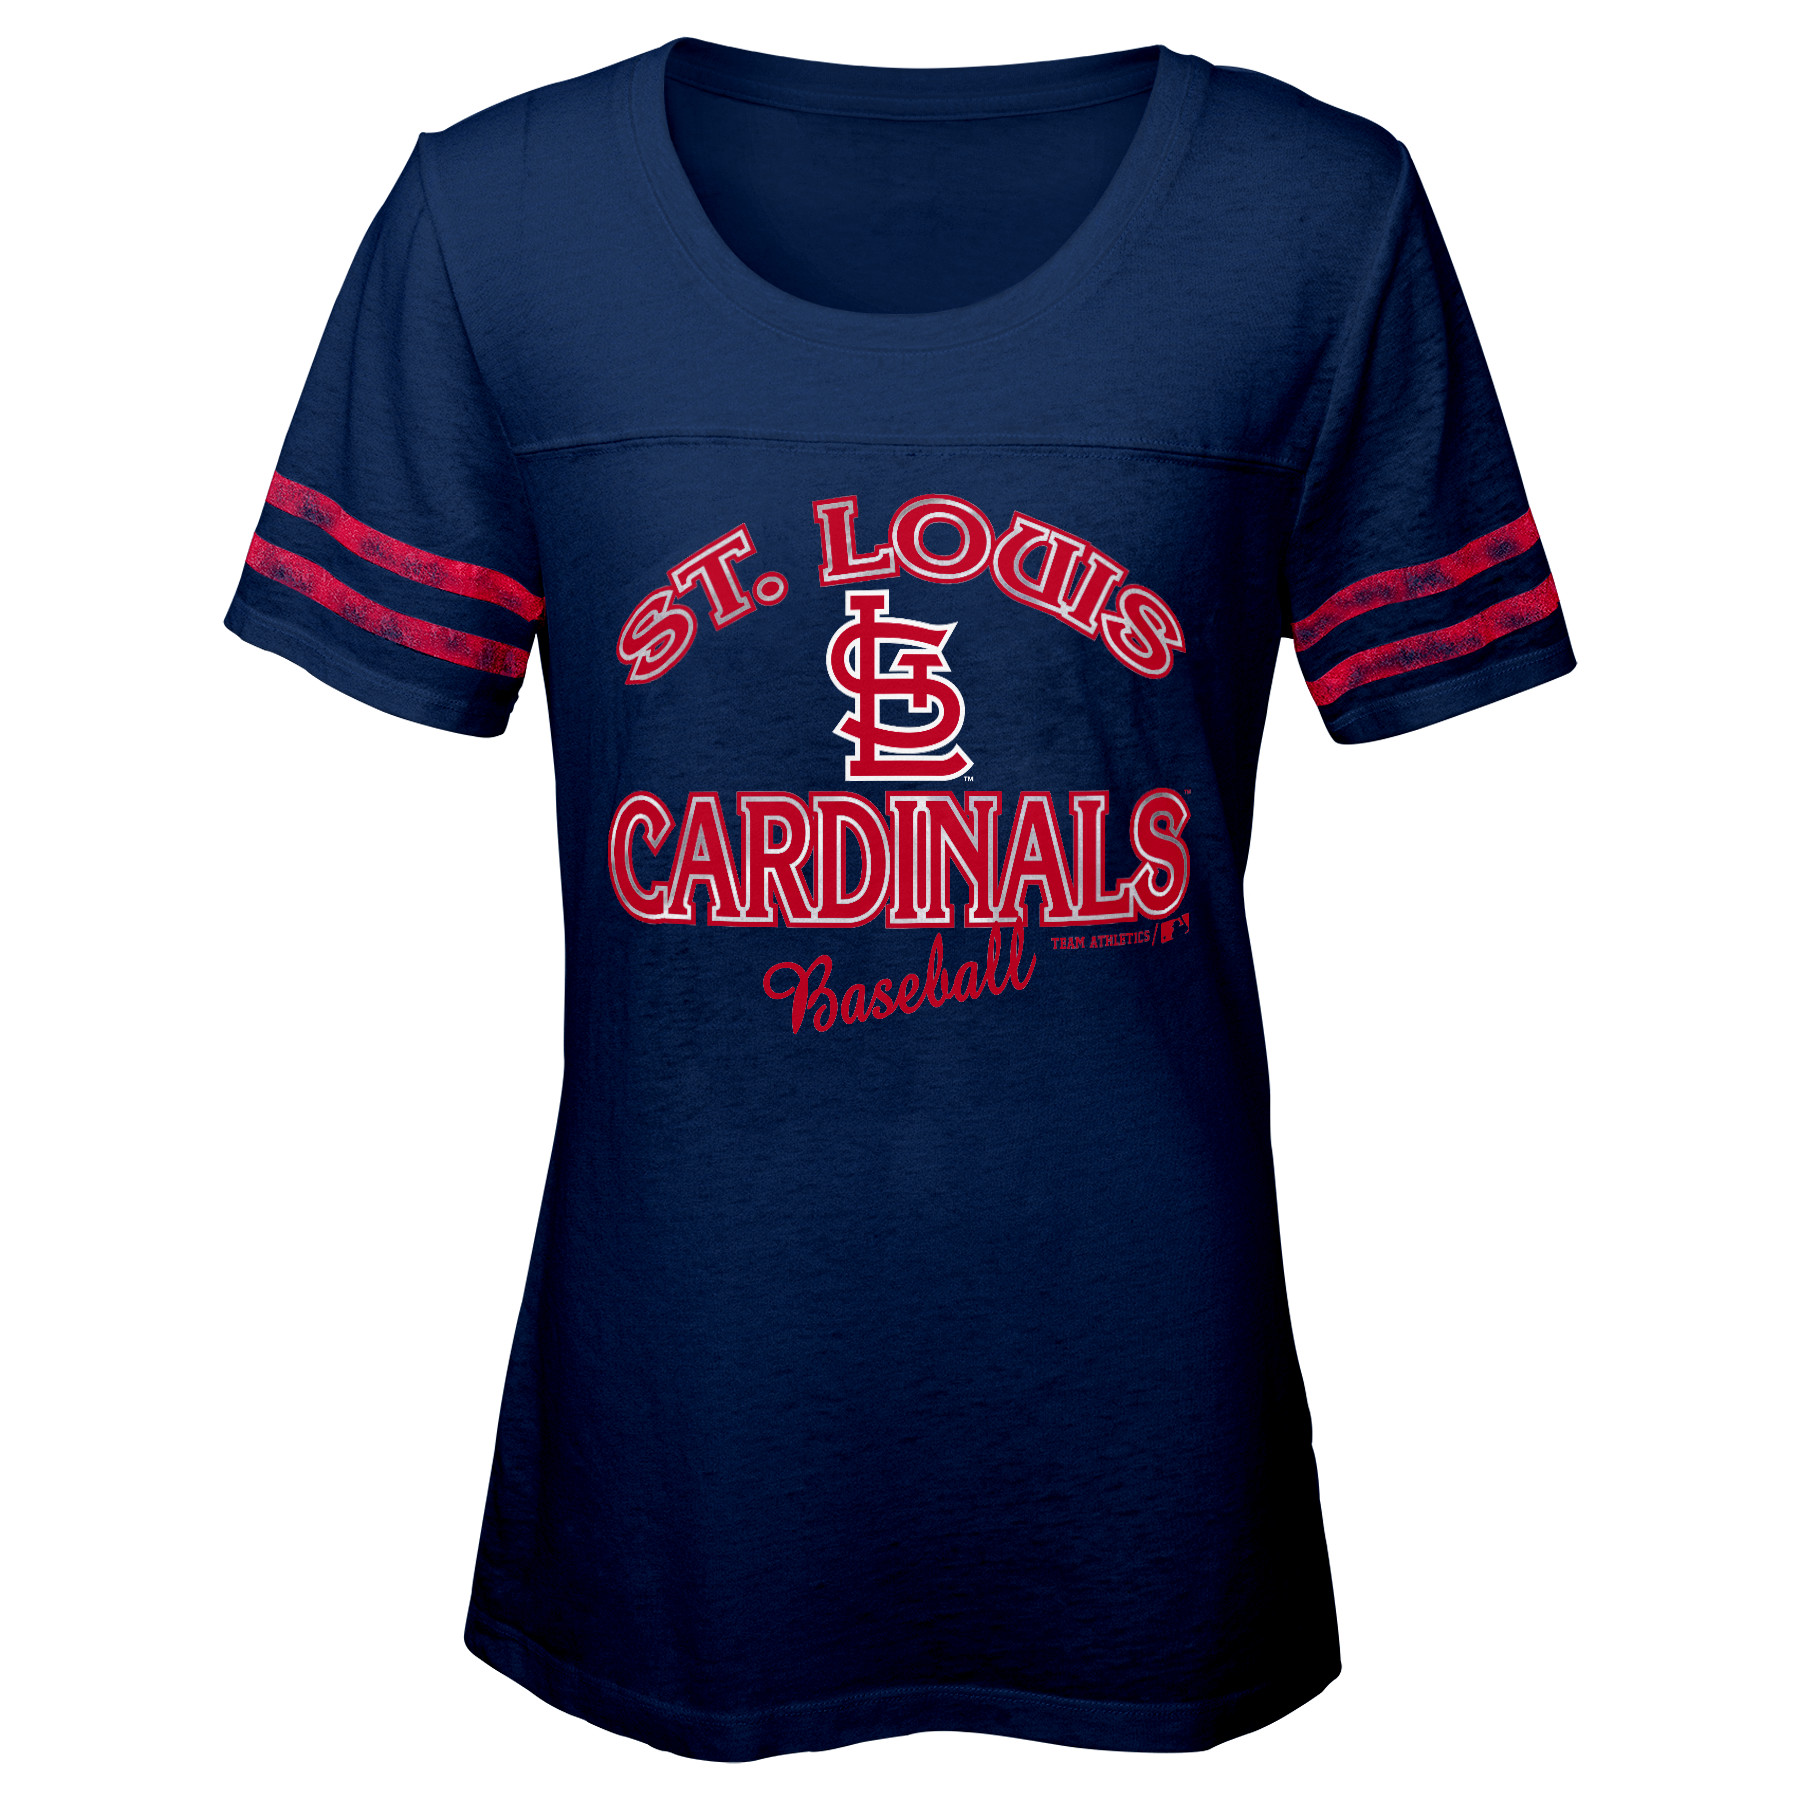 MLB St Louis CARDINALS TEE Short Sleeve Girls Fashion 60% Cotton 40% Polyester Alternate Team Colors 7 - 16